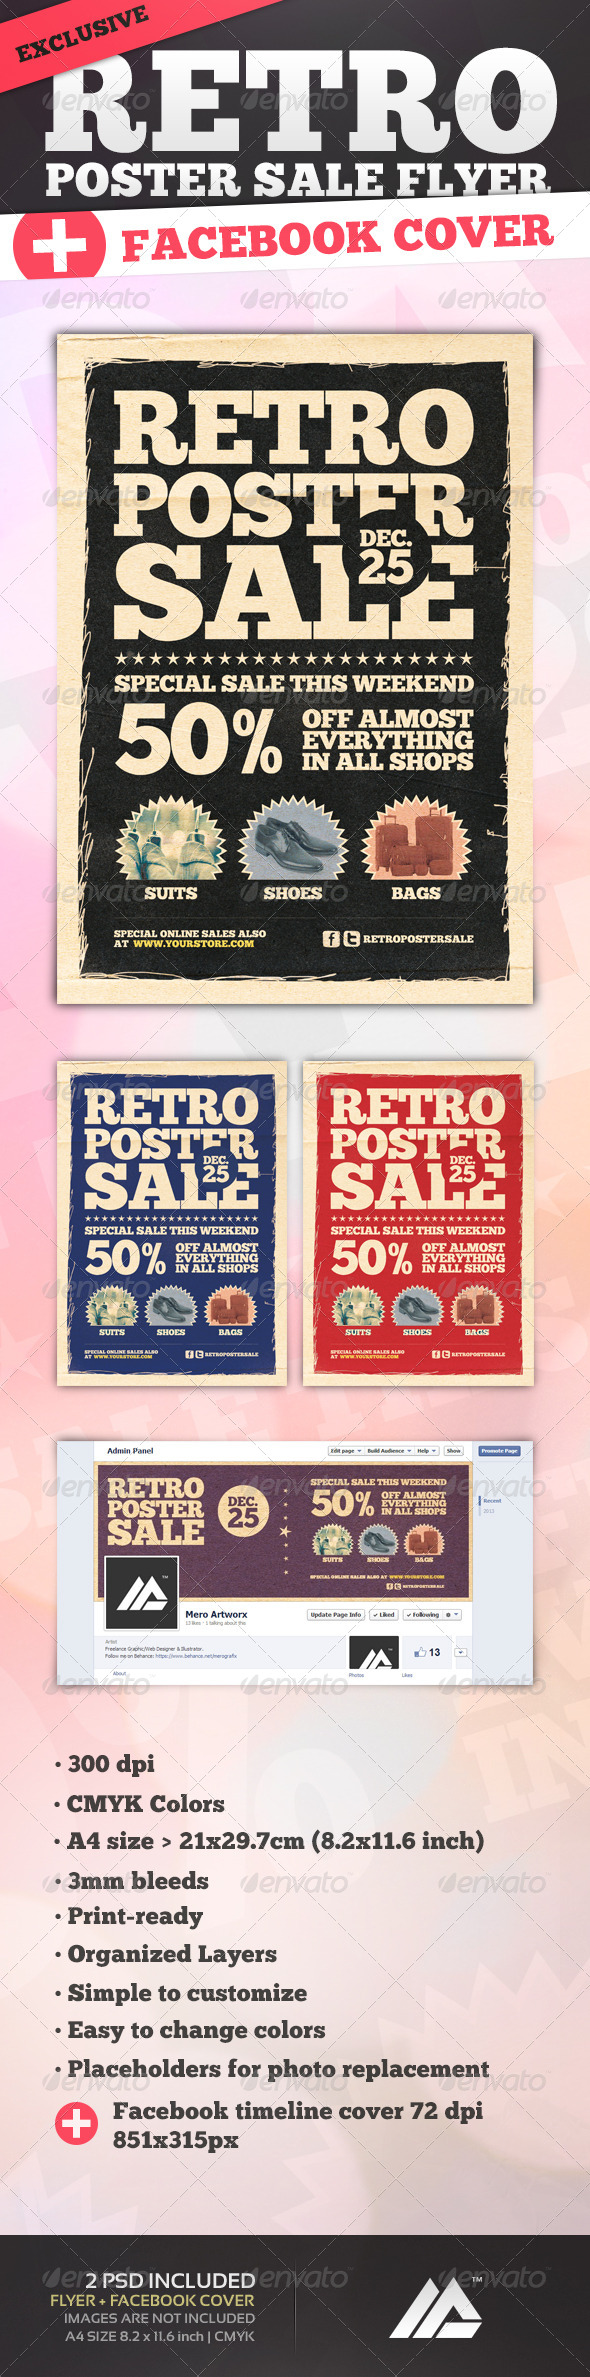 GraphicRiver Retro Poster Sale Flyer PSD 6442583